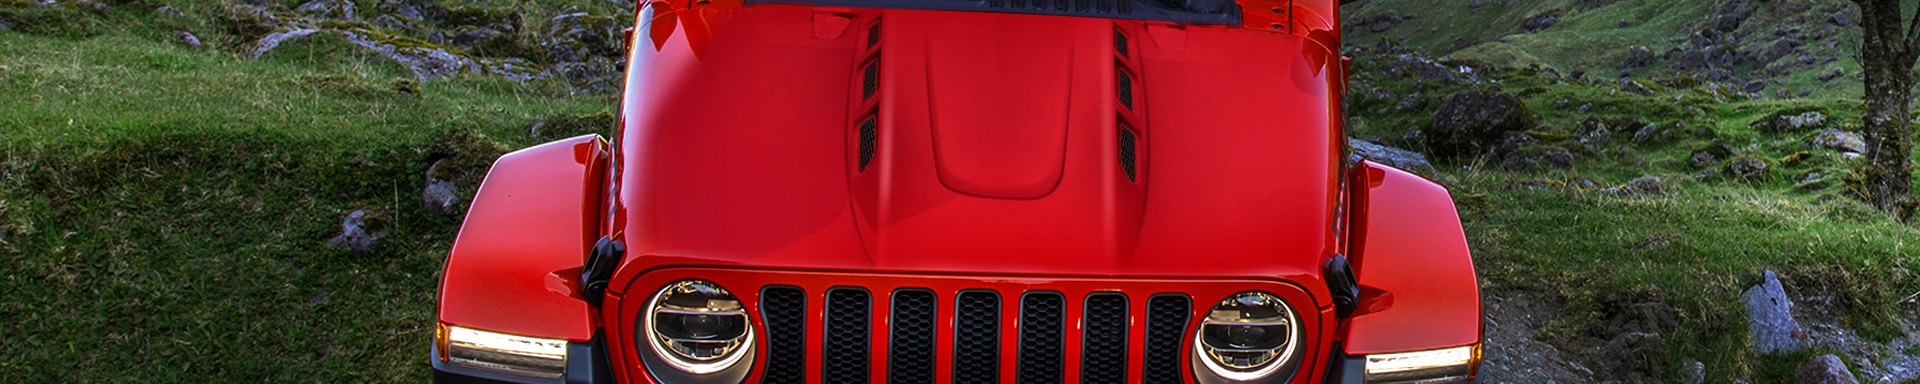 Add Finishing Touch To Your JK Build With New Duraflex AVG Style Hood